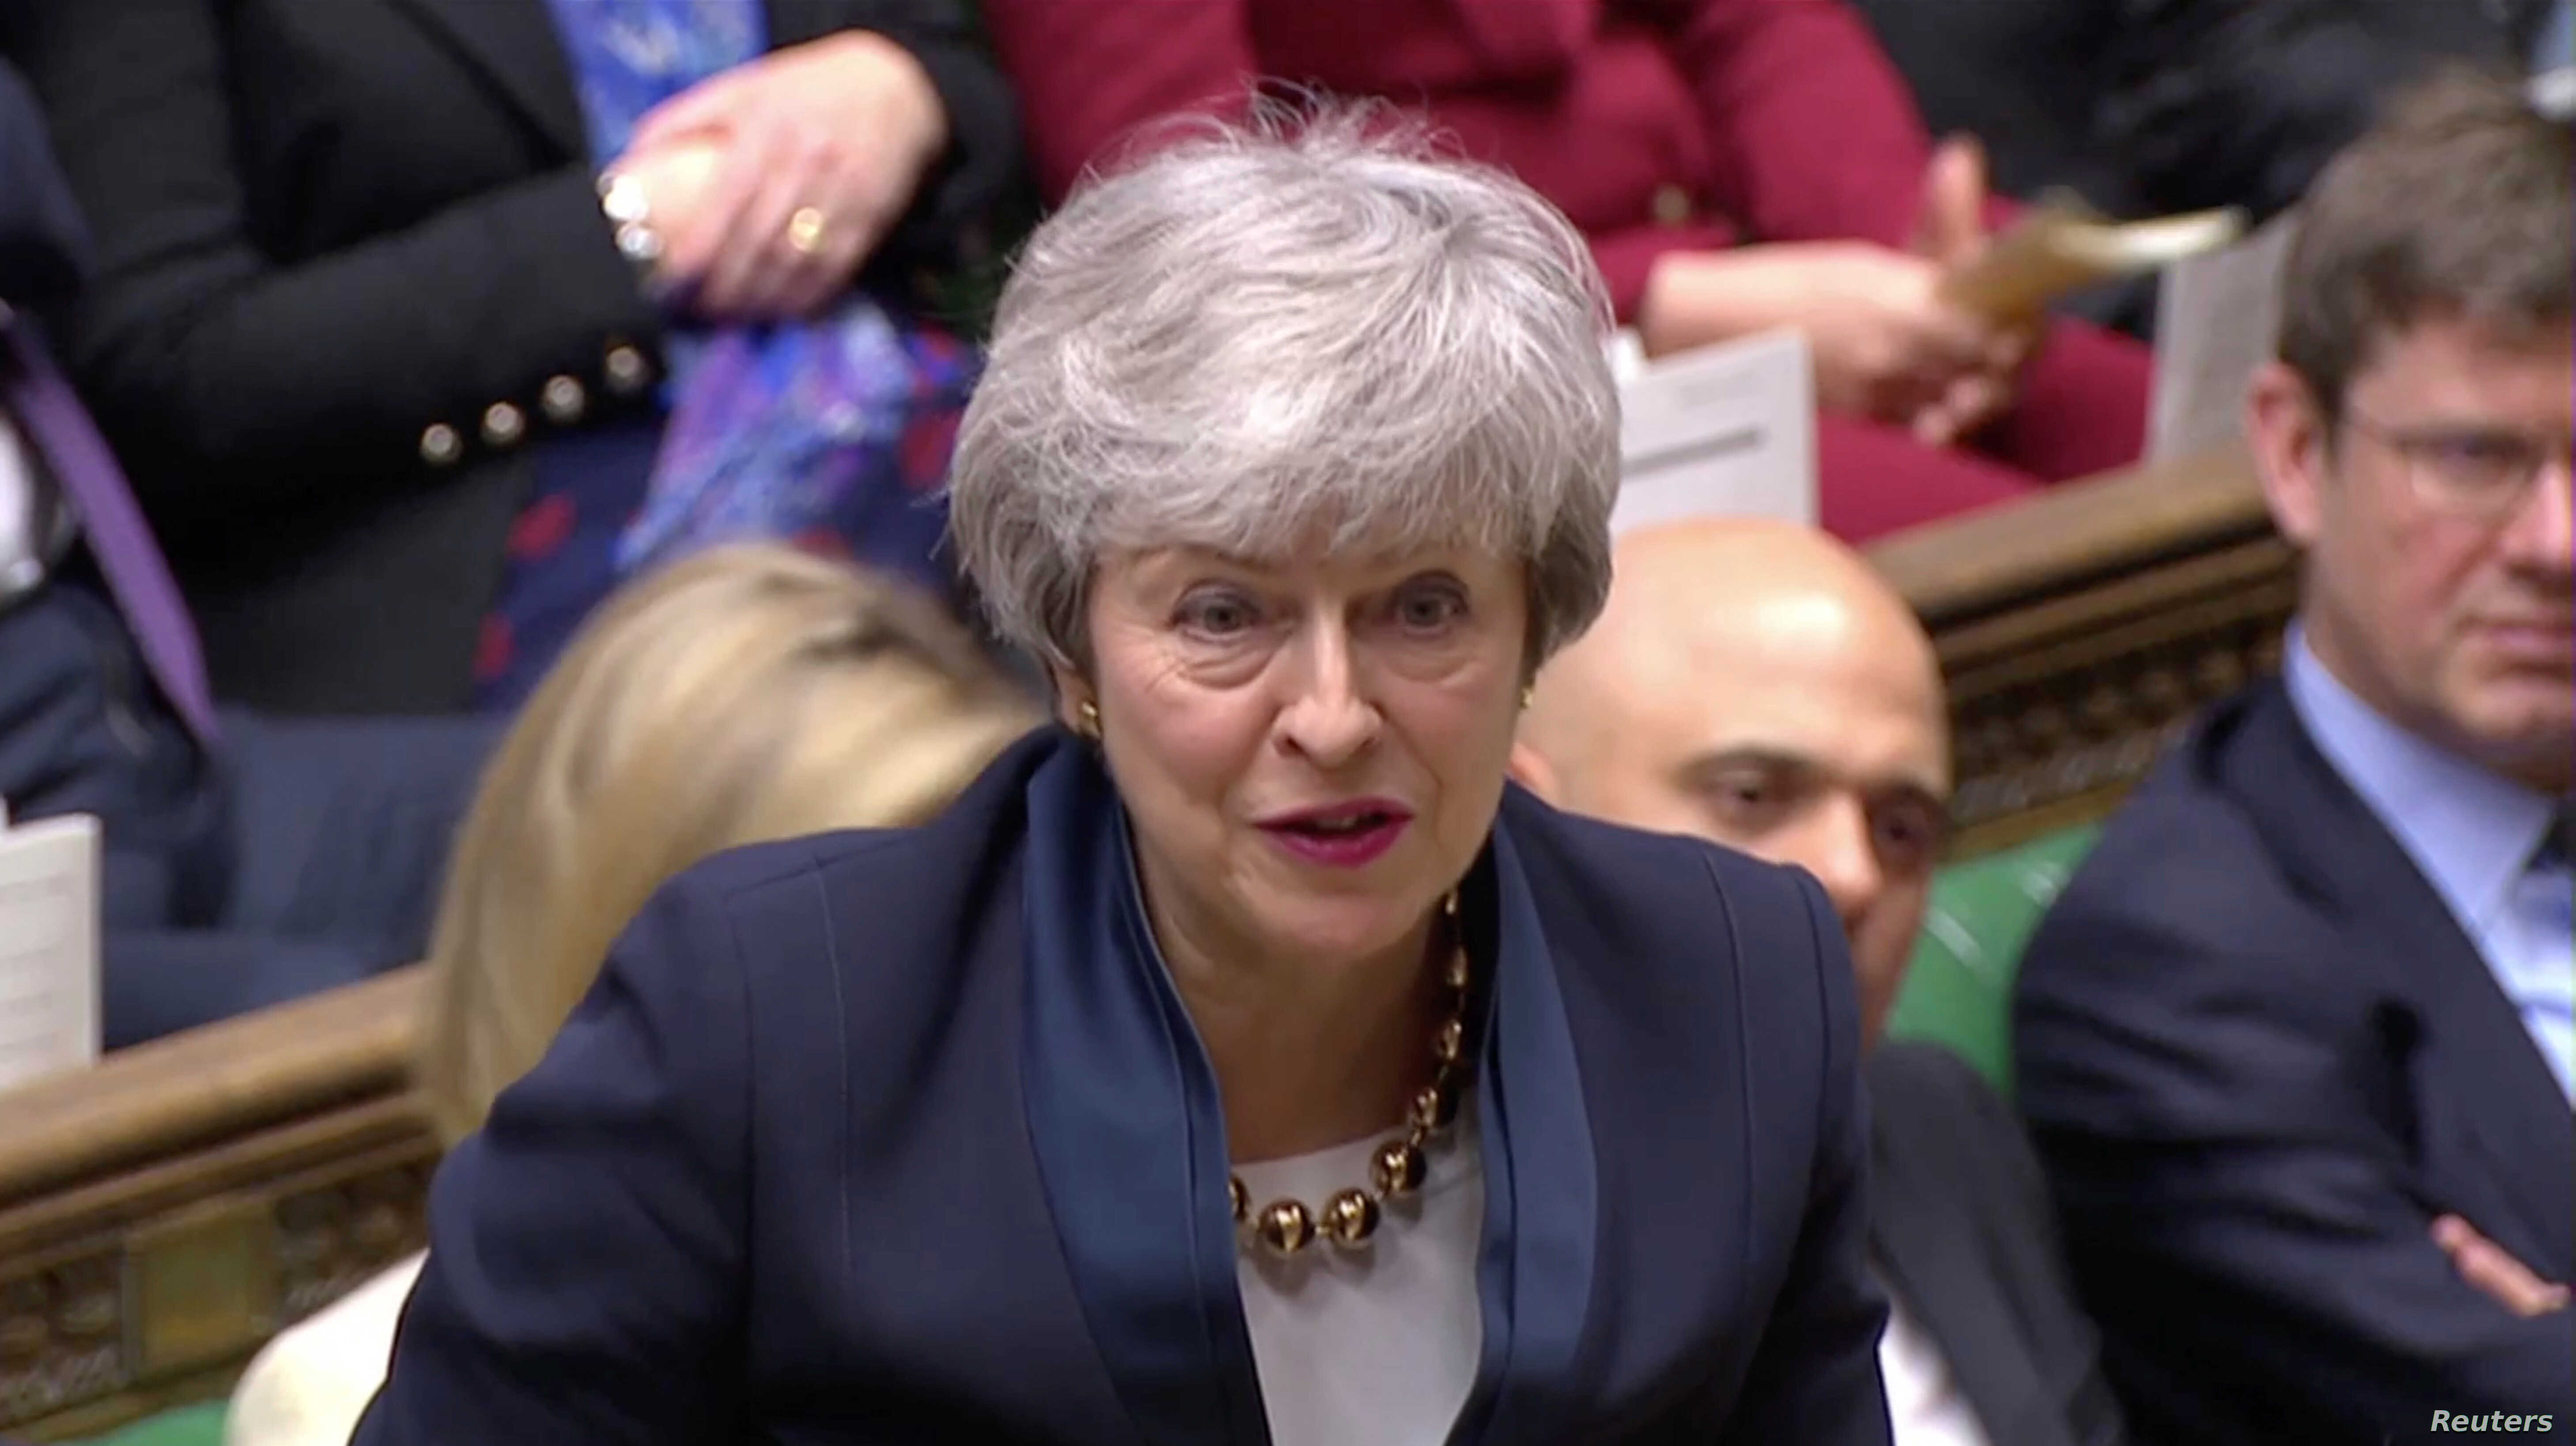 8b16f00291 Britain's Prime Minister Theresa May speaks in the Parliament in London,  April 3, 2019, in this screen grab taken from video.